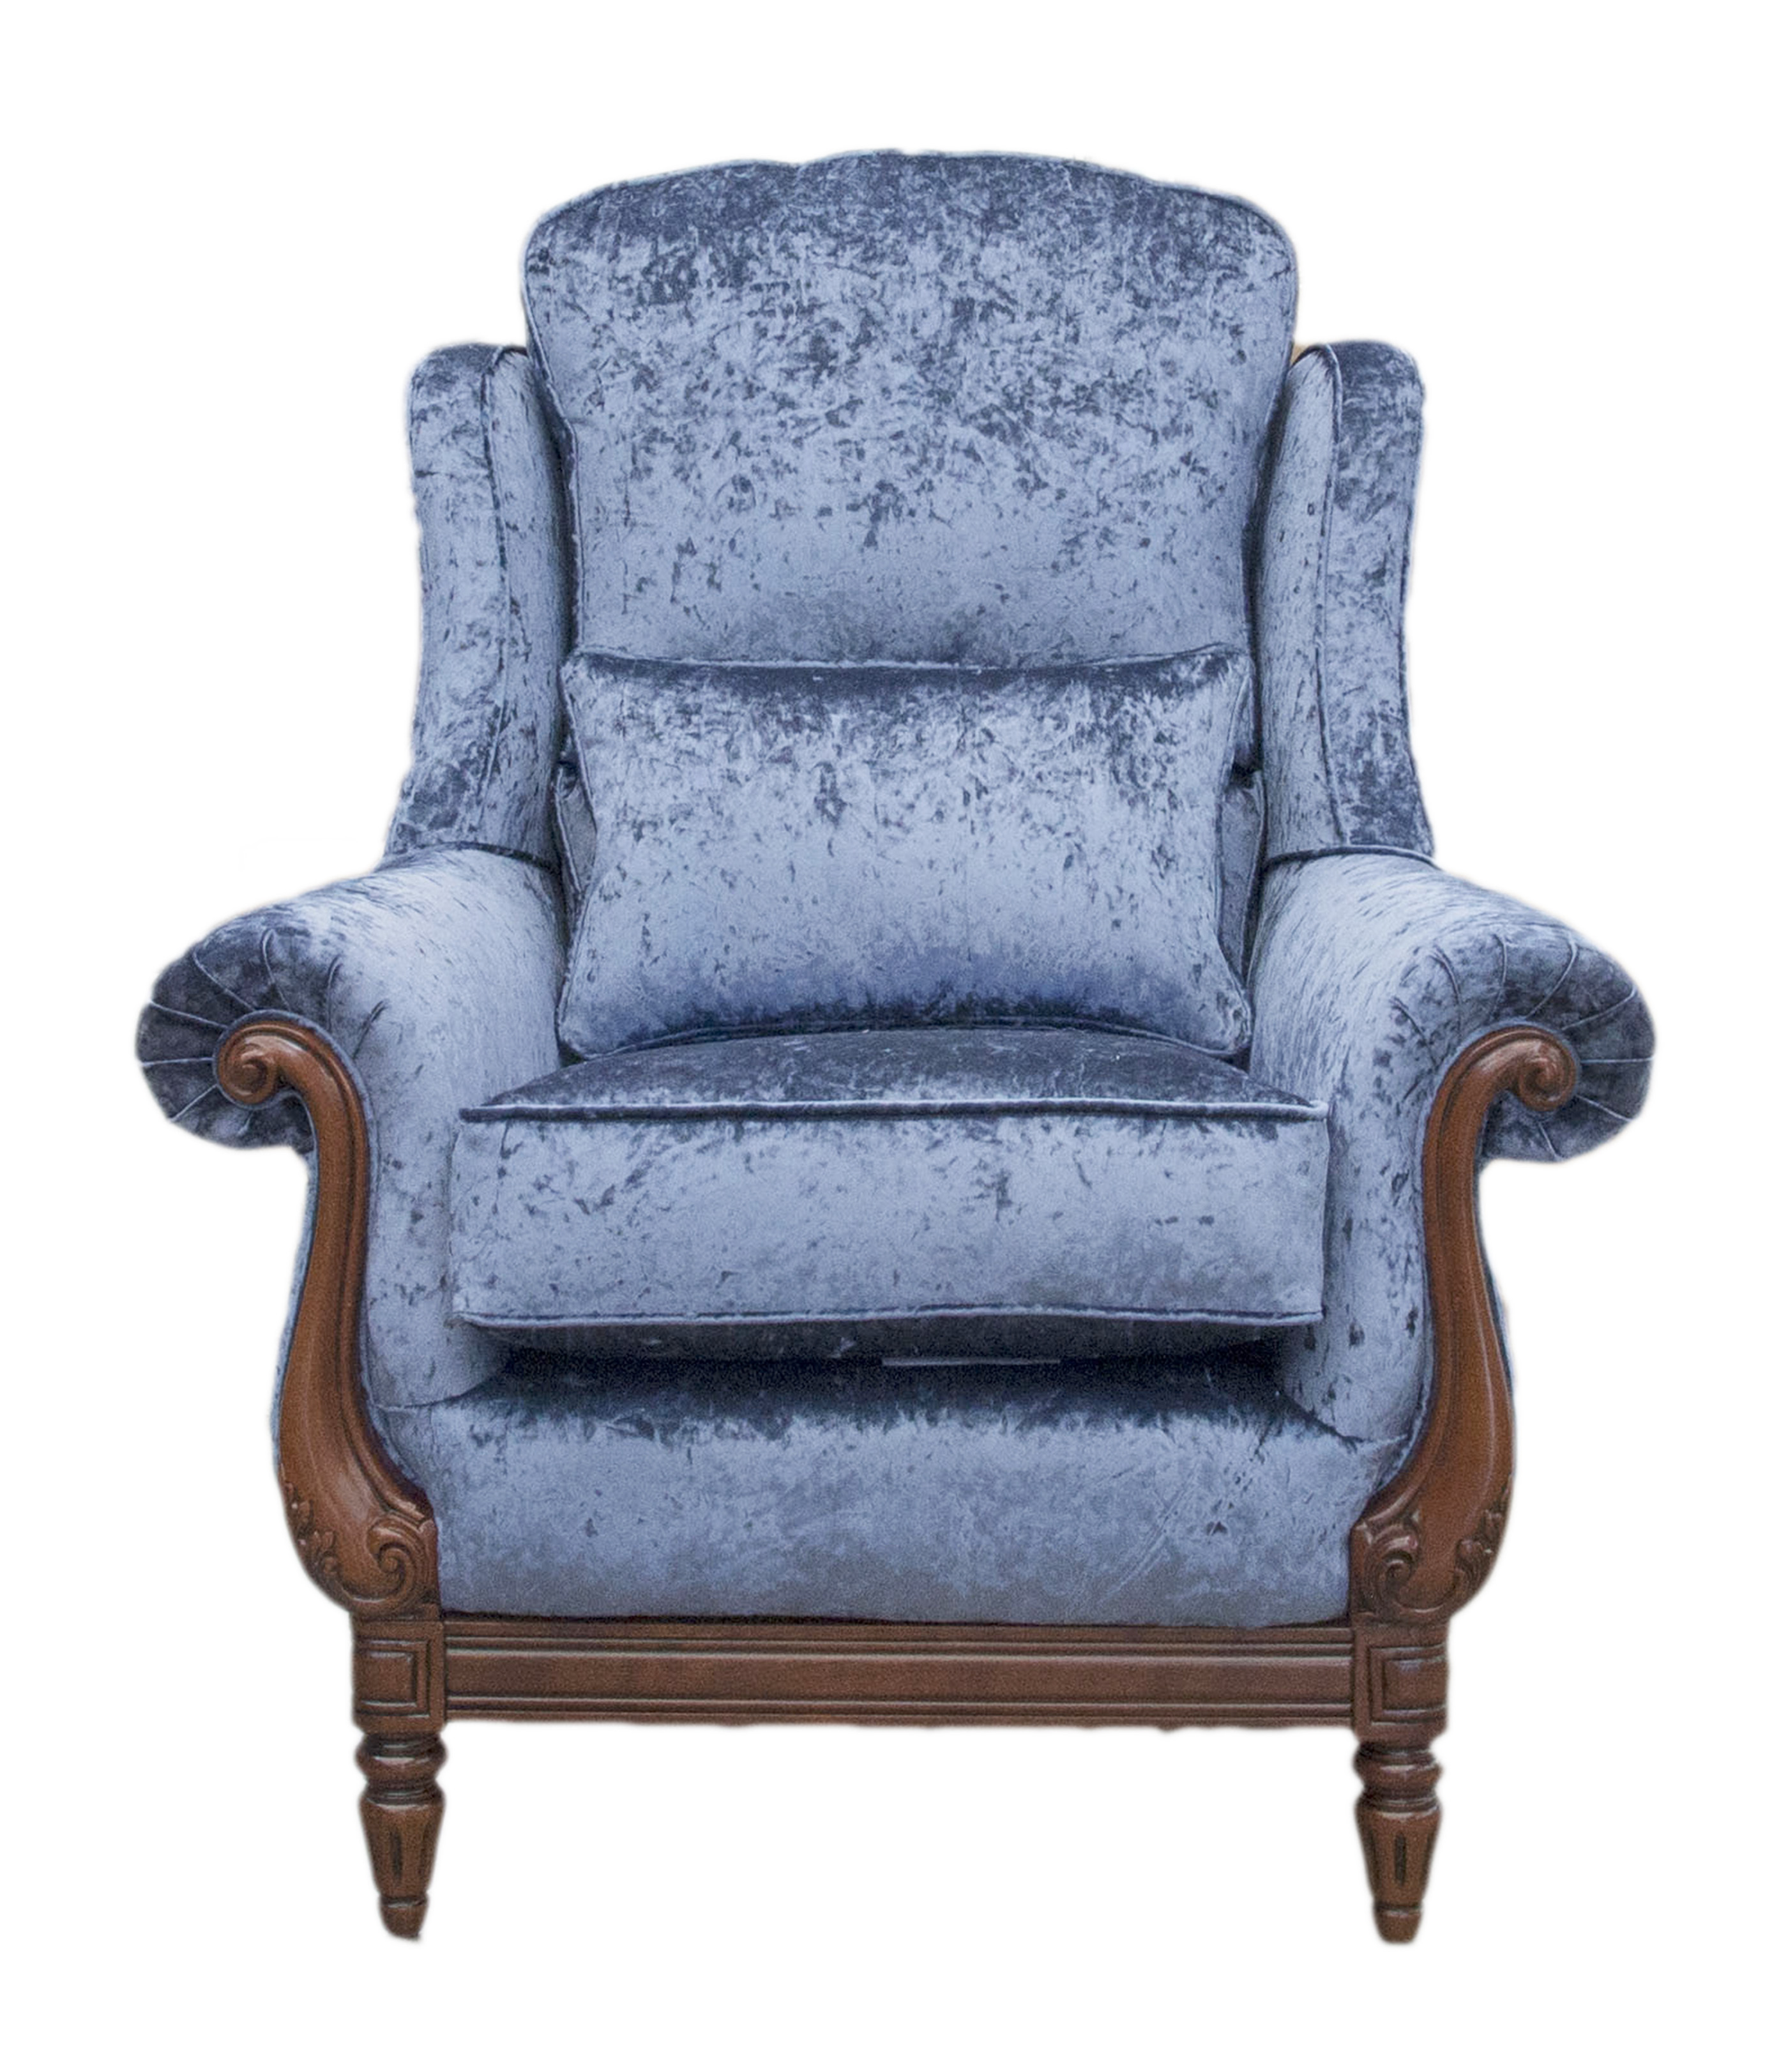 Gandon Chair - Silver Collection - Bling